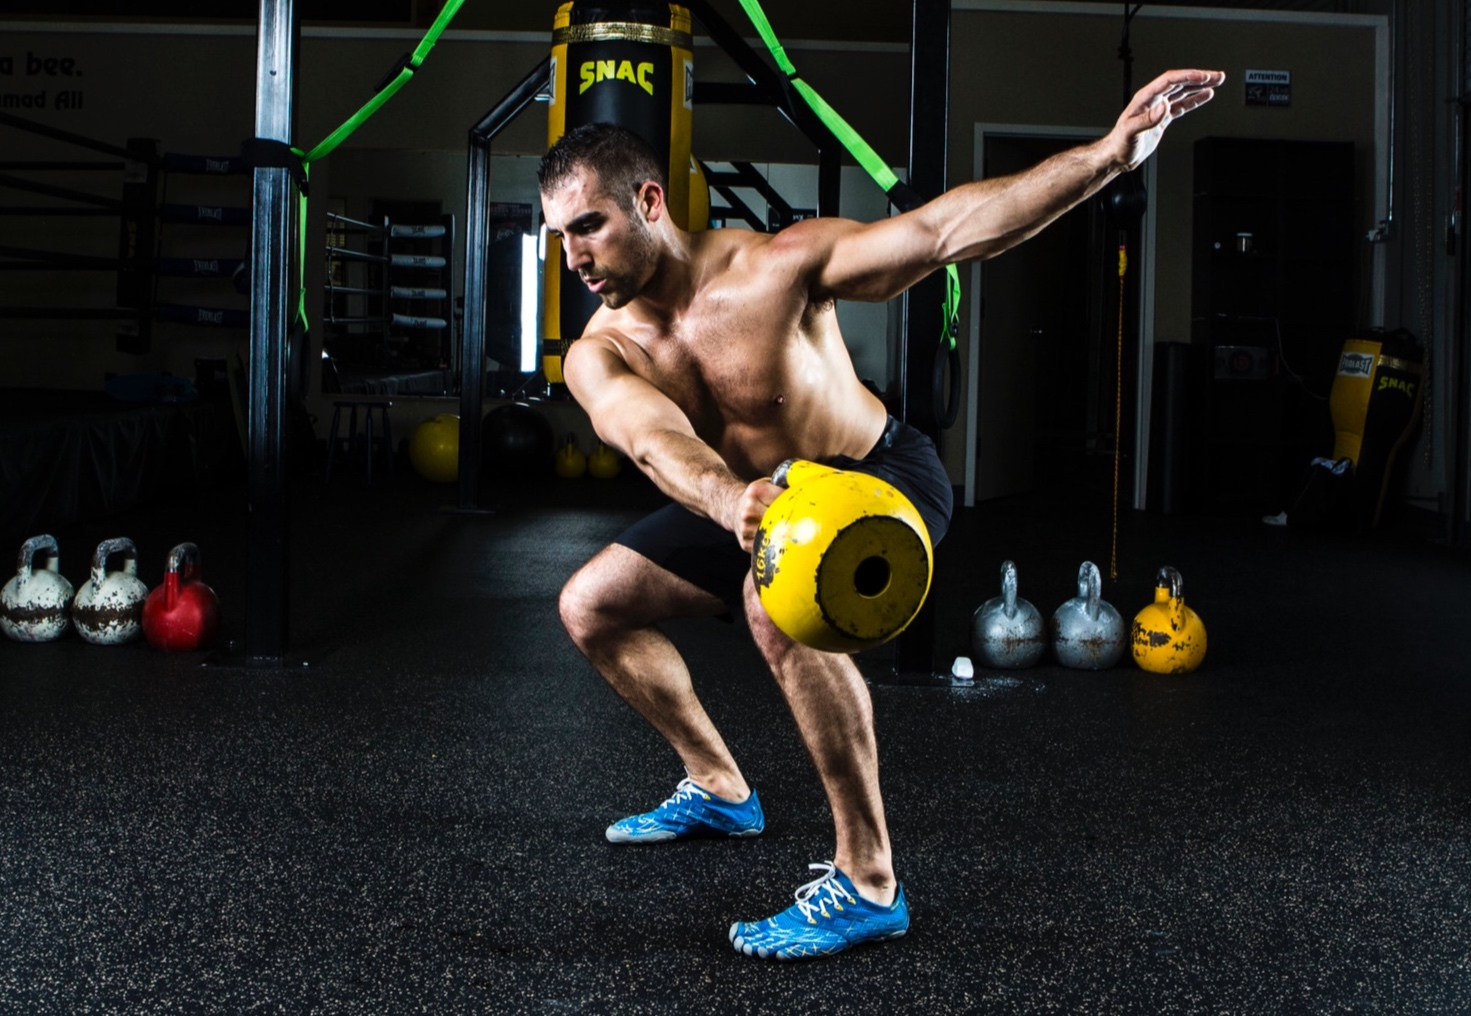 A Kettlebell Program Like NO OTHER - 12 Months in the Making400+ 4K VideosStep-by-Step Guided Instruction